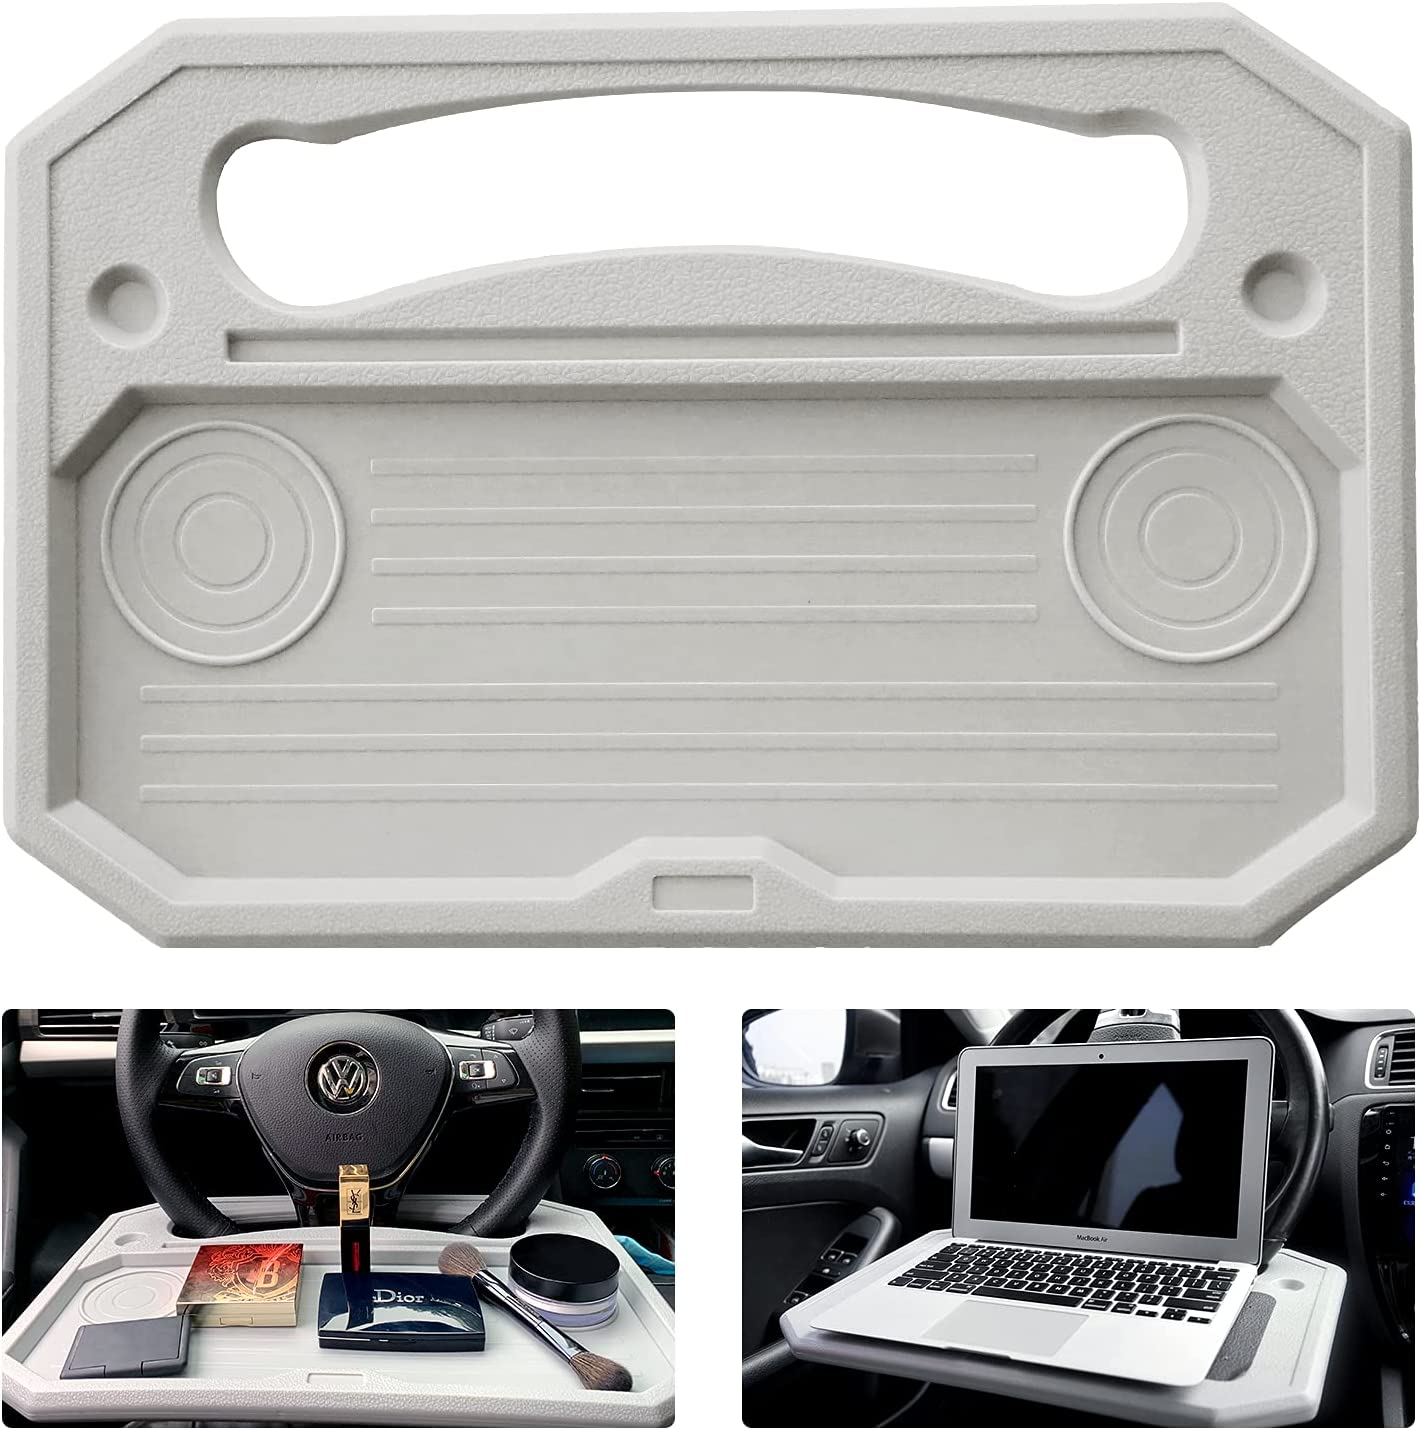 Matdology Car Tray Steering Wheel Table Auto Laptop Desk for Work, iPad, Notebook, Tablet, Food, Eating, Drink, Car Travel Table for Vehicle (Gray)